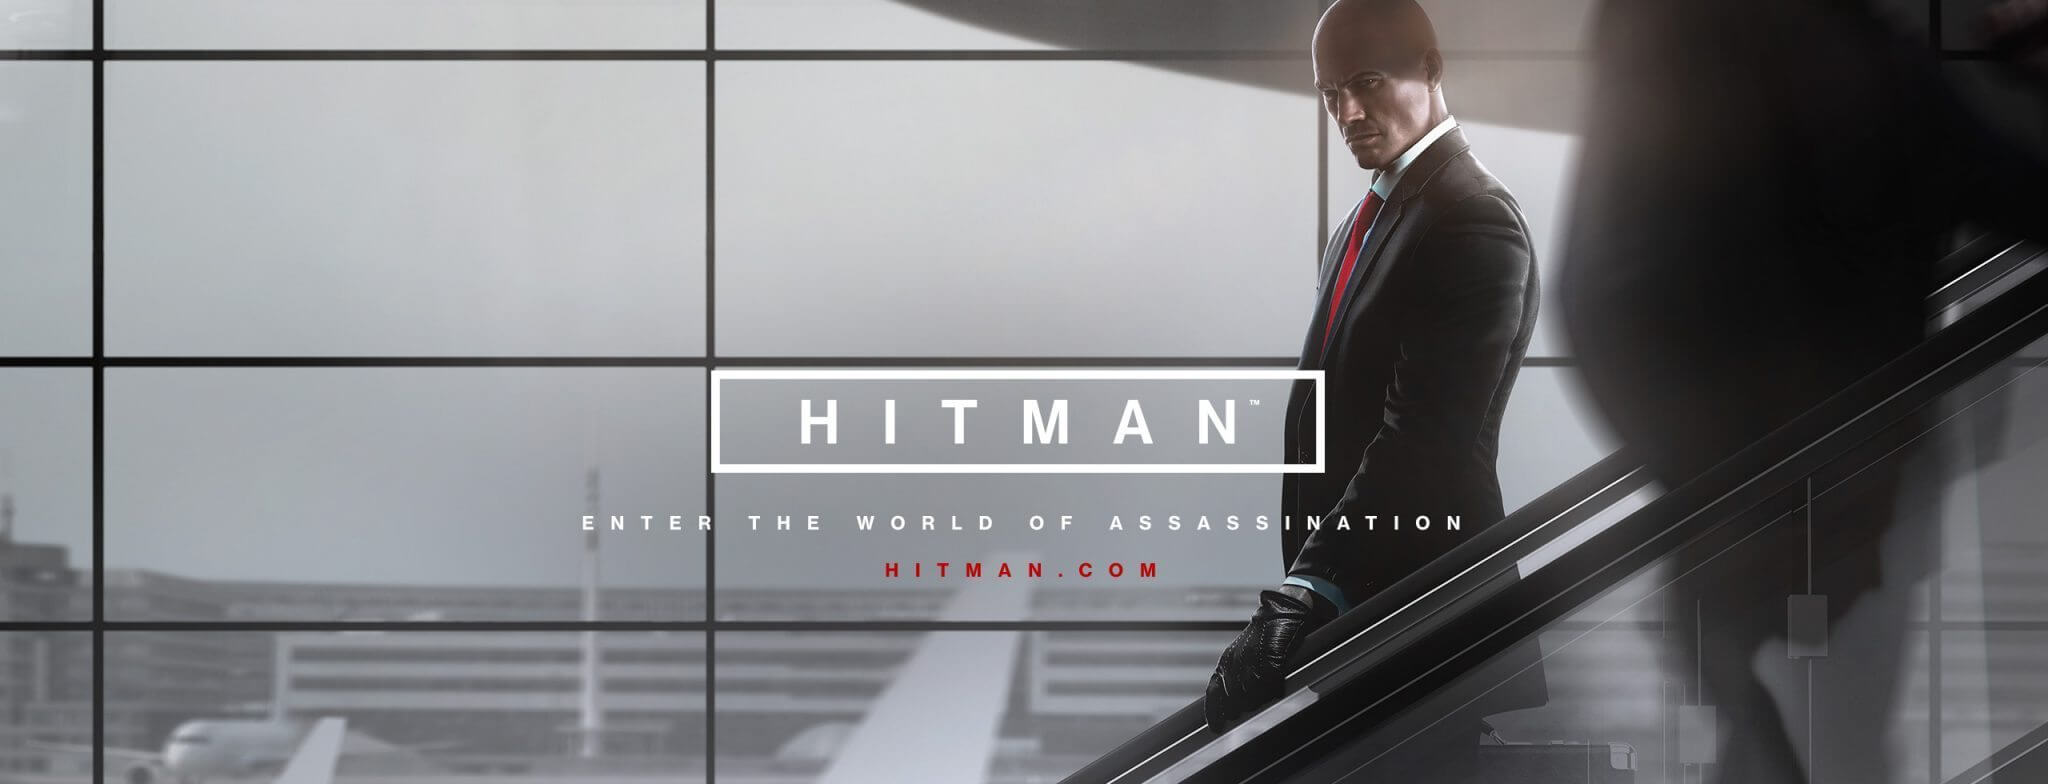 hitman marquee 1 - Torne-se um assassino: Beta de Hitman liberado para PSN Plus